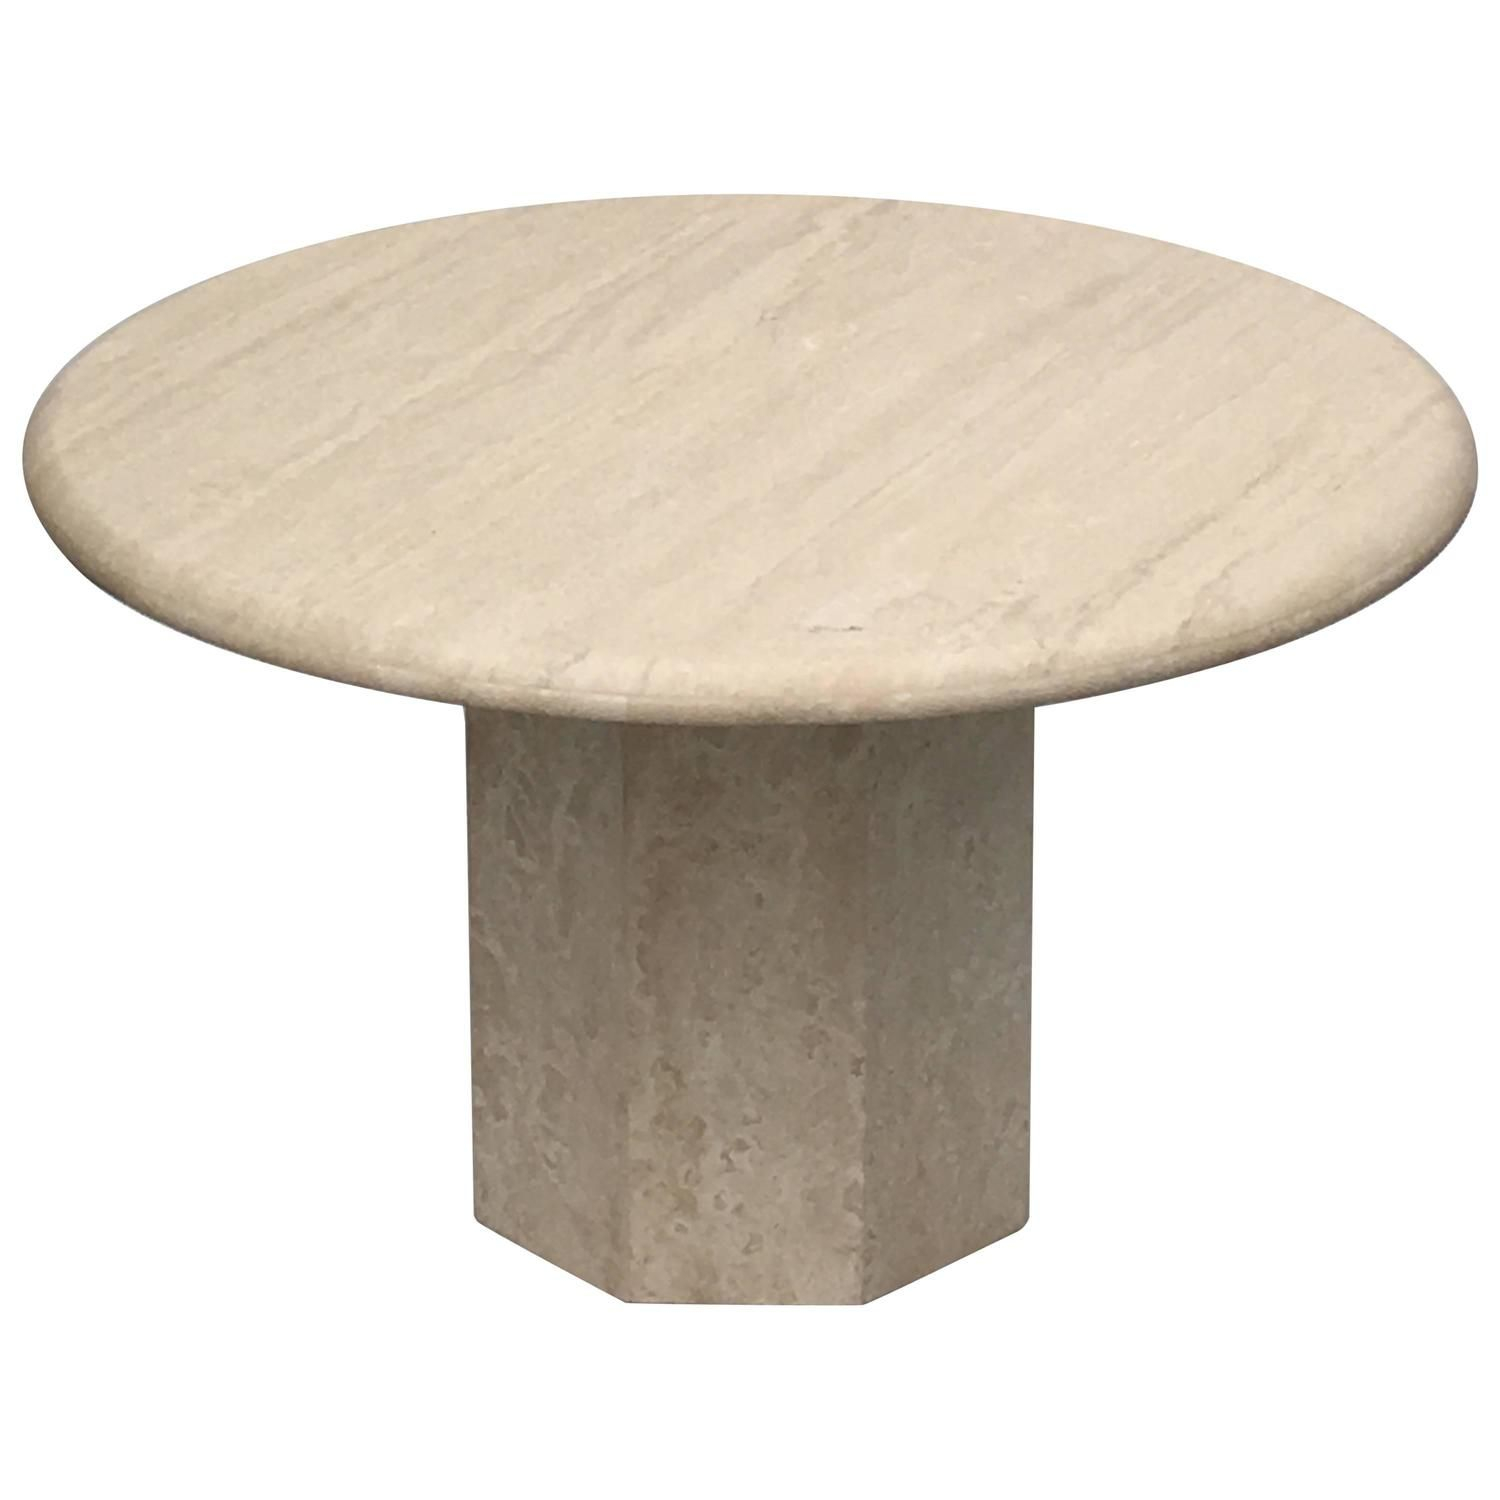 Round Italia Travertine Dining Table I Like Nice Things 3 inside proportions 1500 X 1500